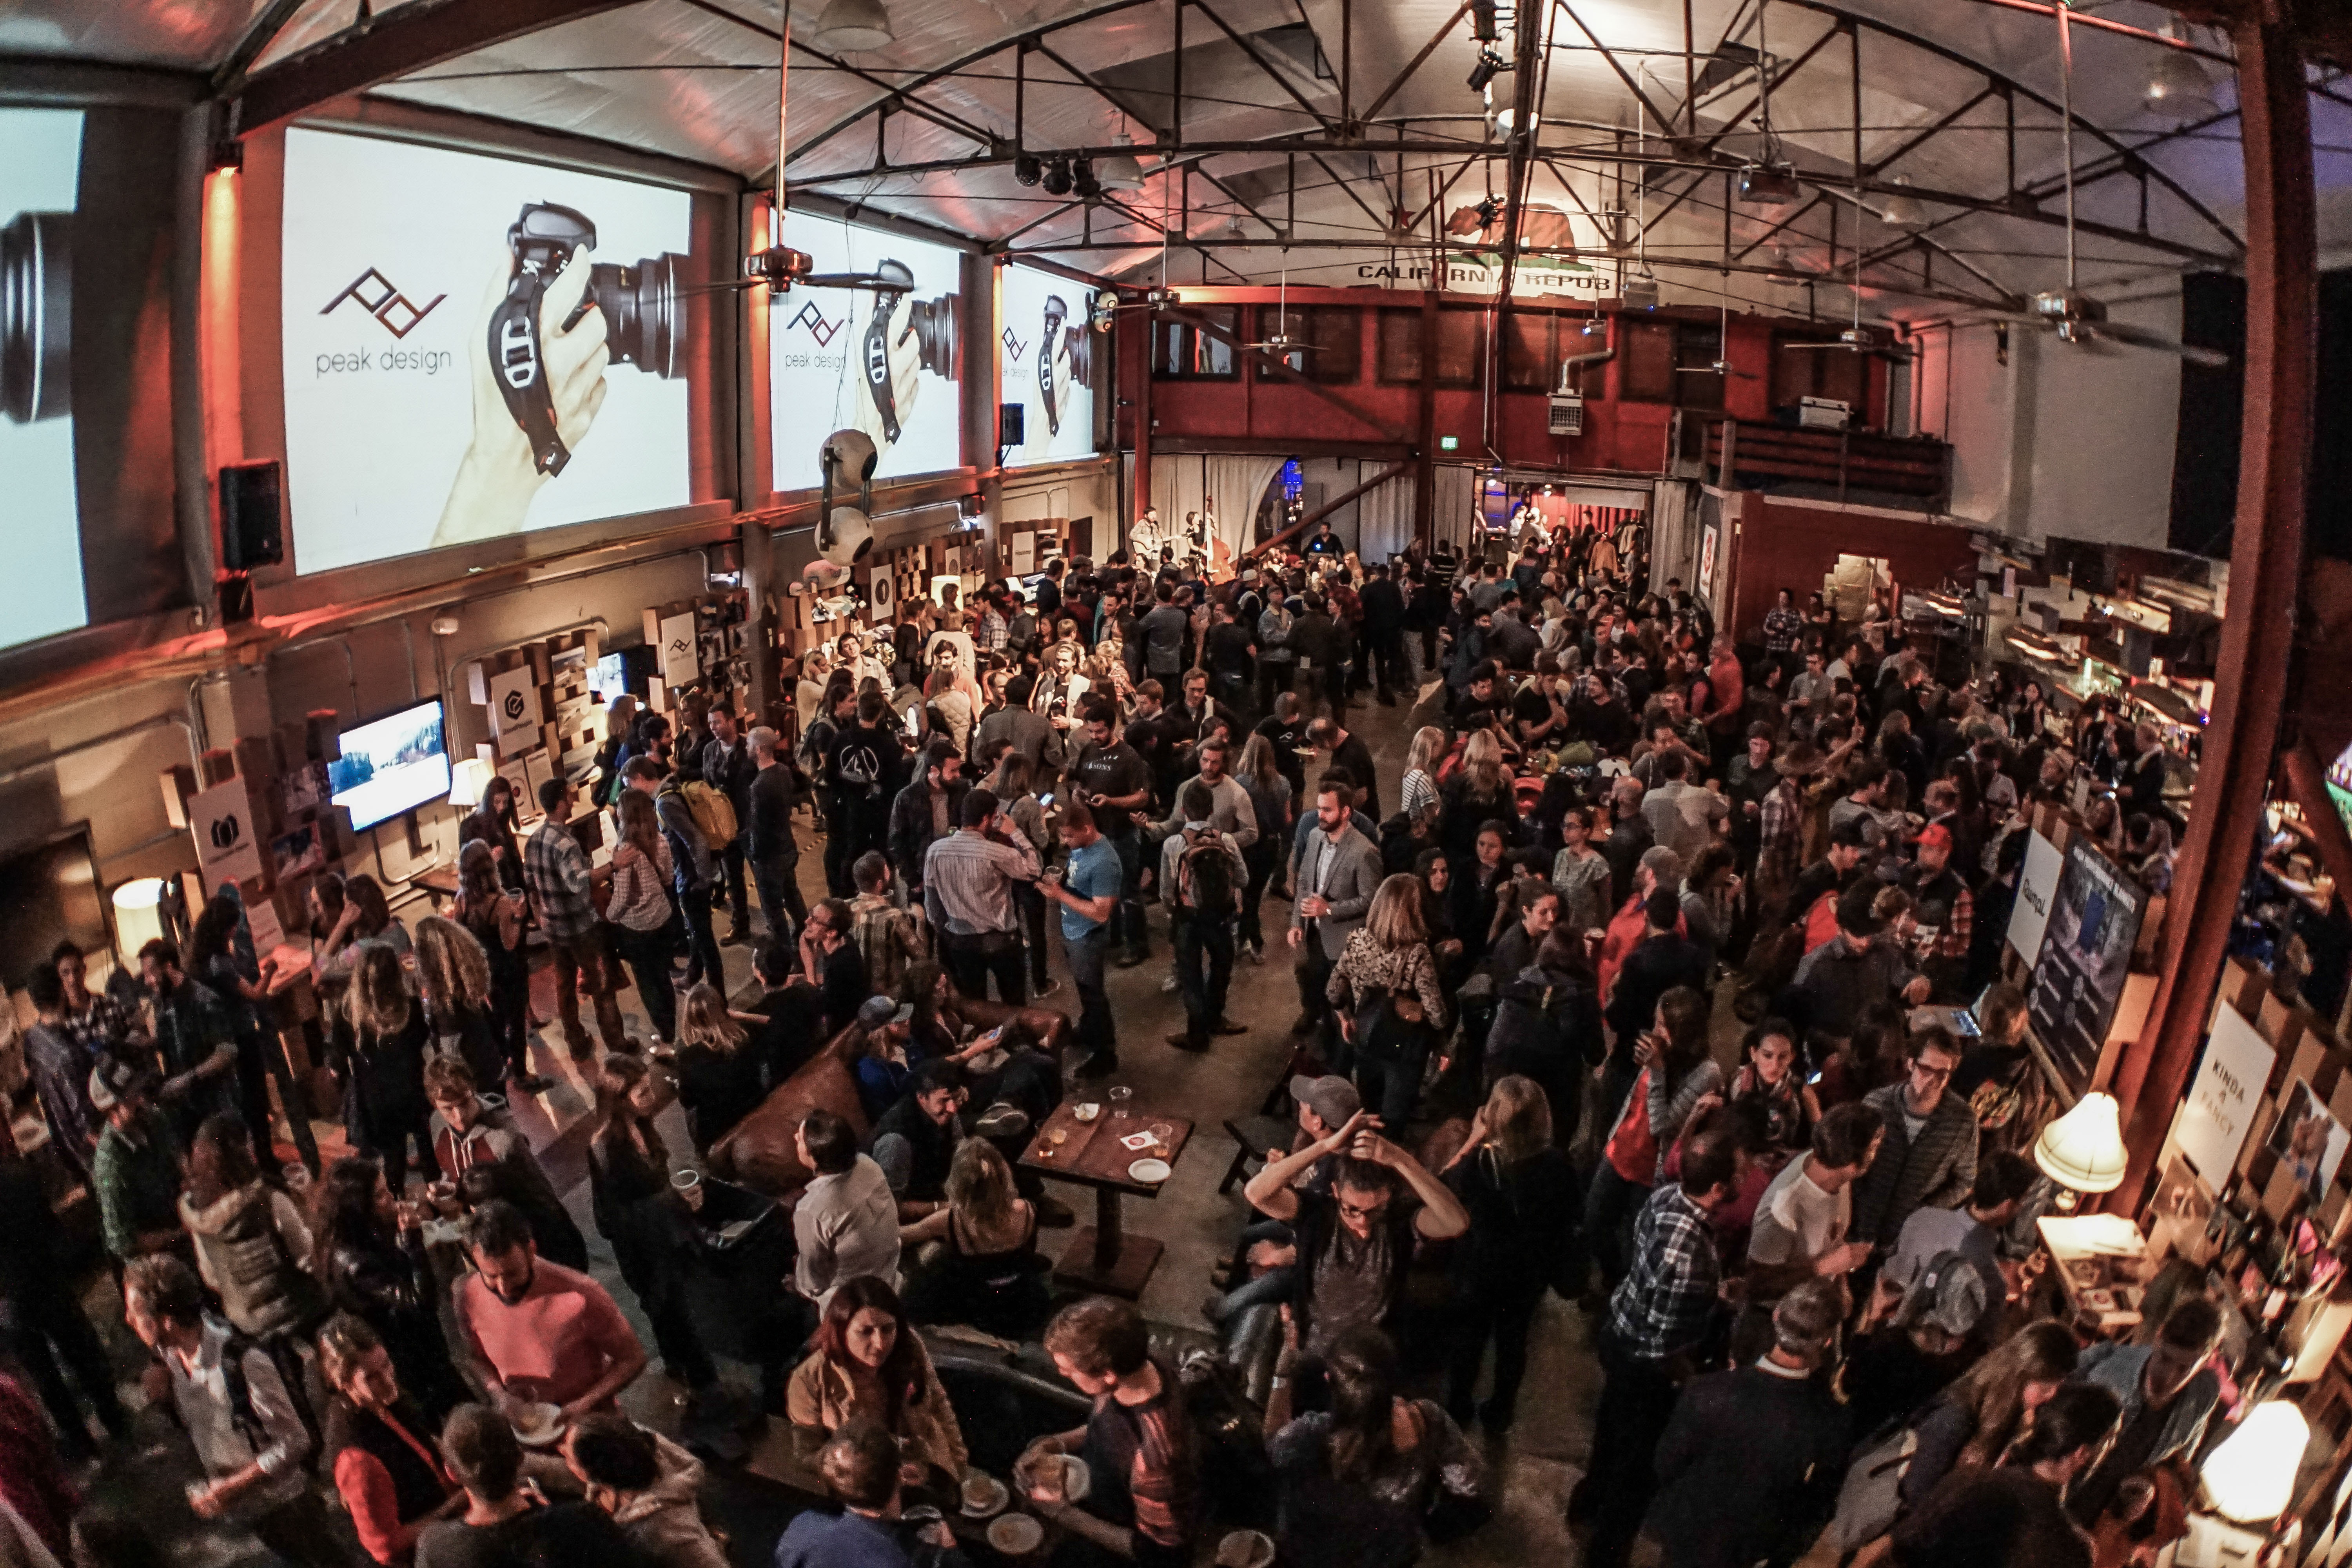 Outdoor SF 7: A Fundraiser party for the planet